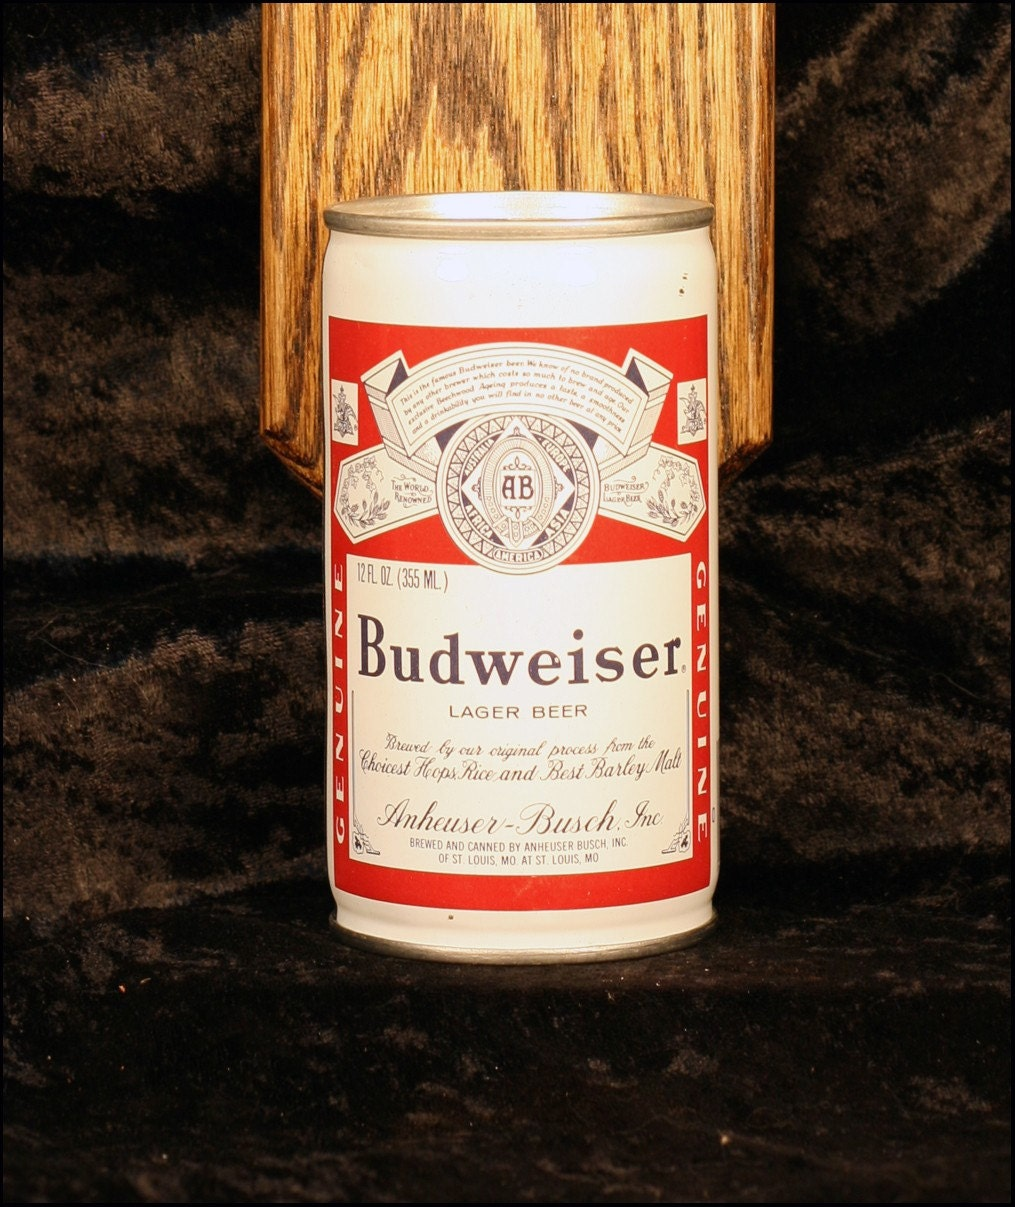 Budweiser Lager Beer Wall Mounted Bottle Opener With Vintage